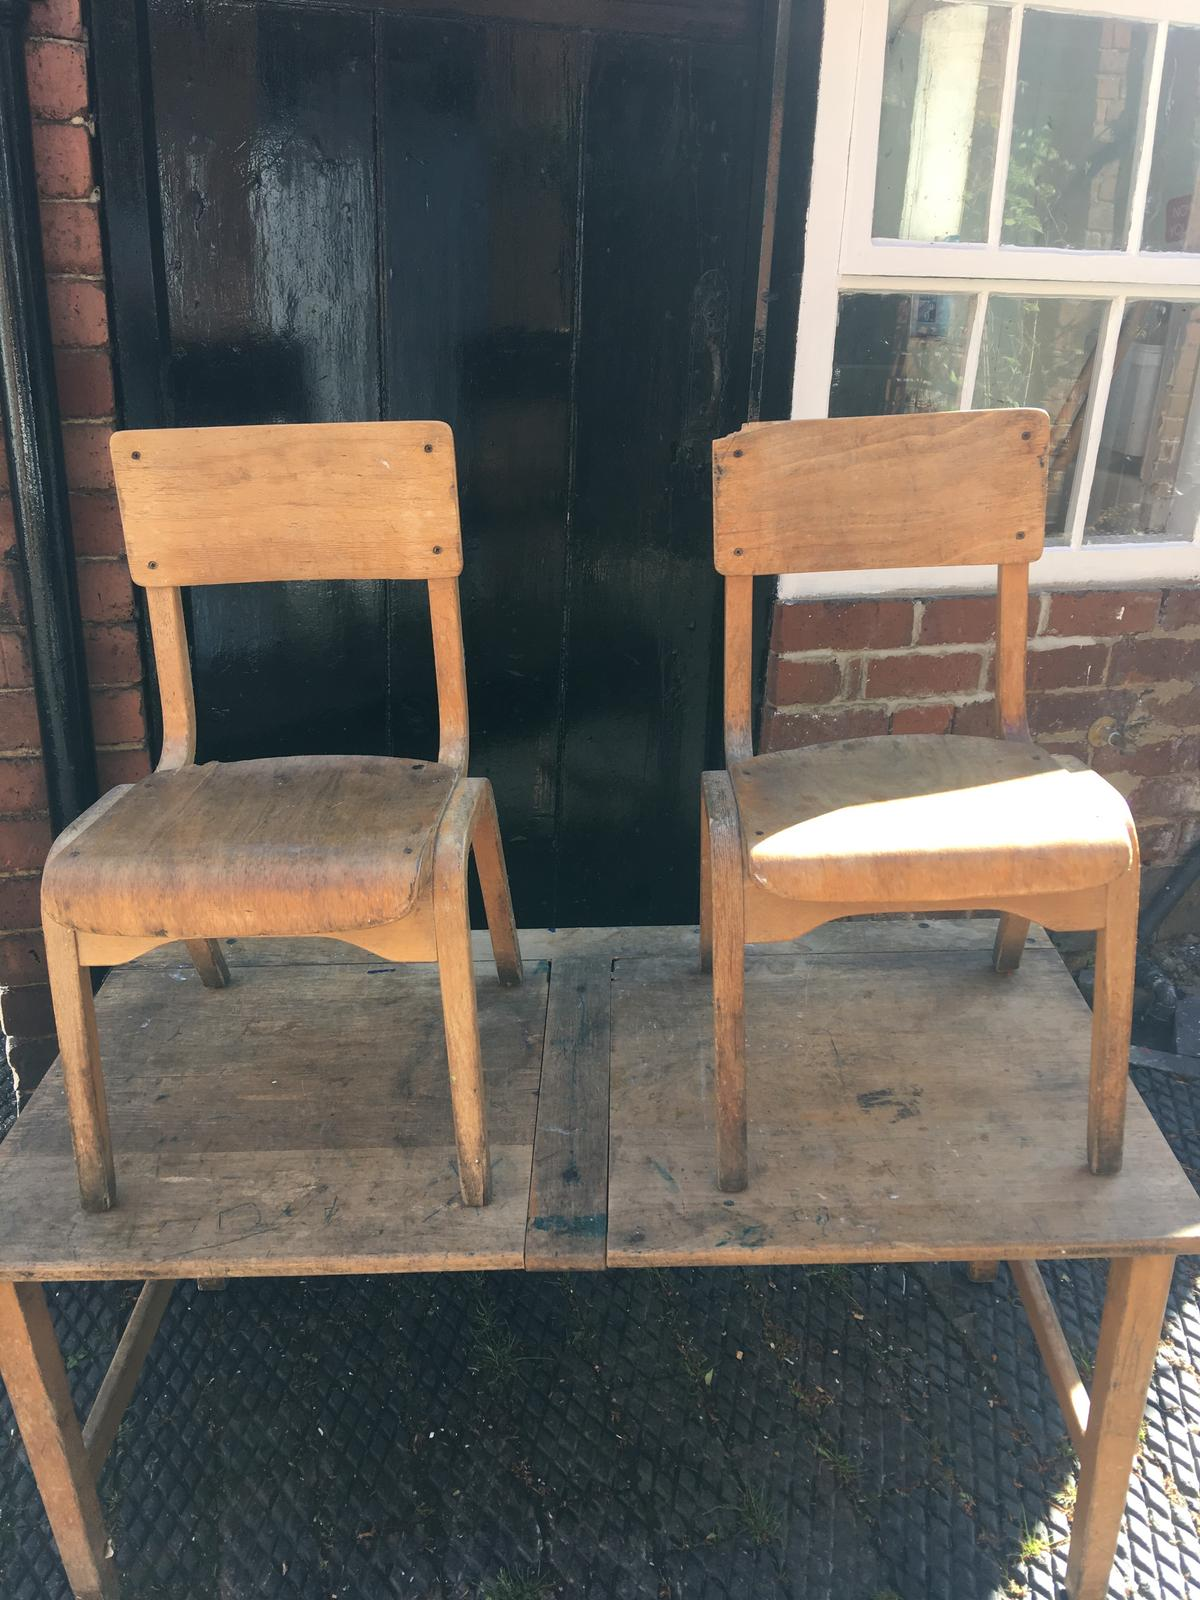 Authentic Old School Desk And Chairs In South Derbyshire Fur 80